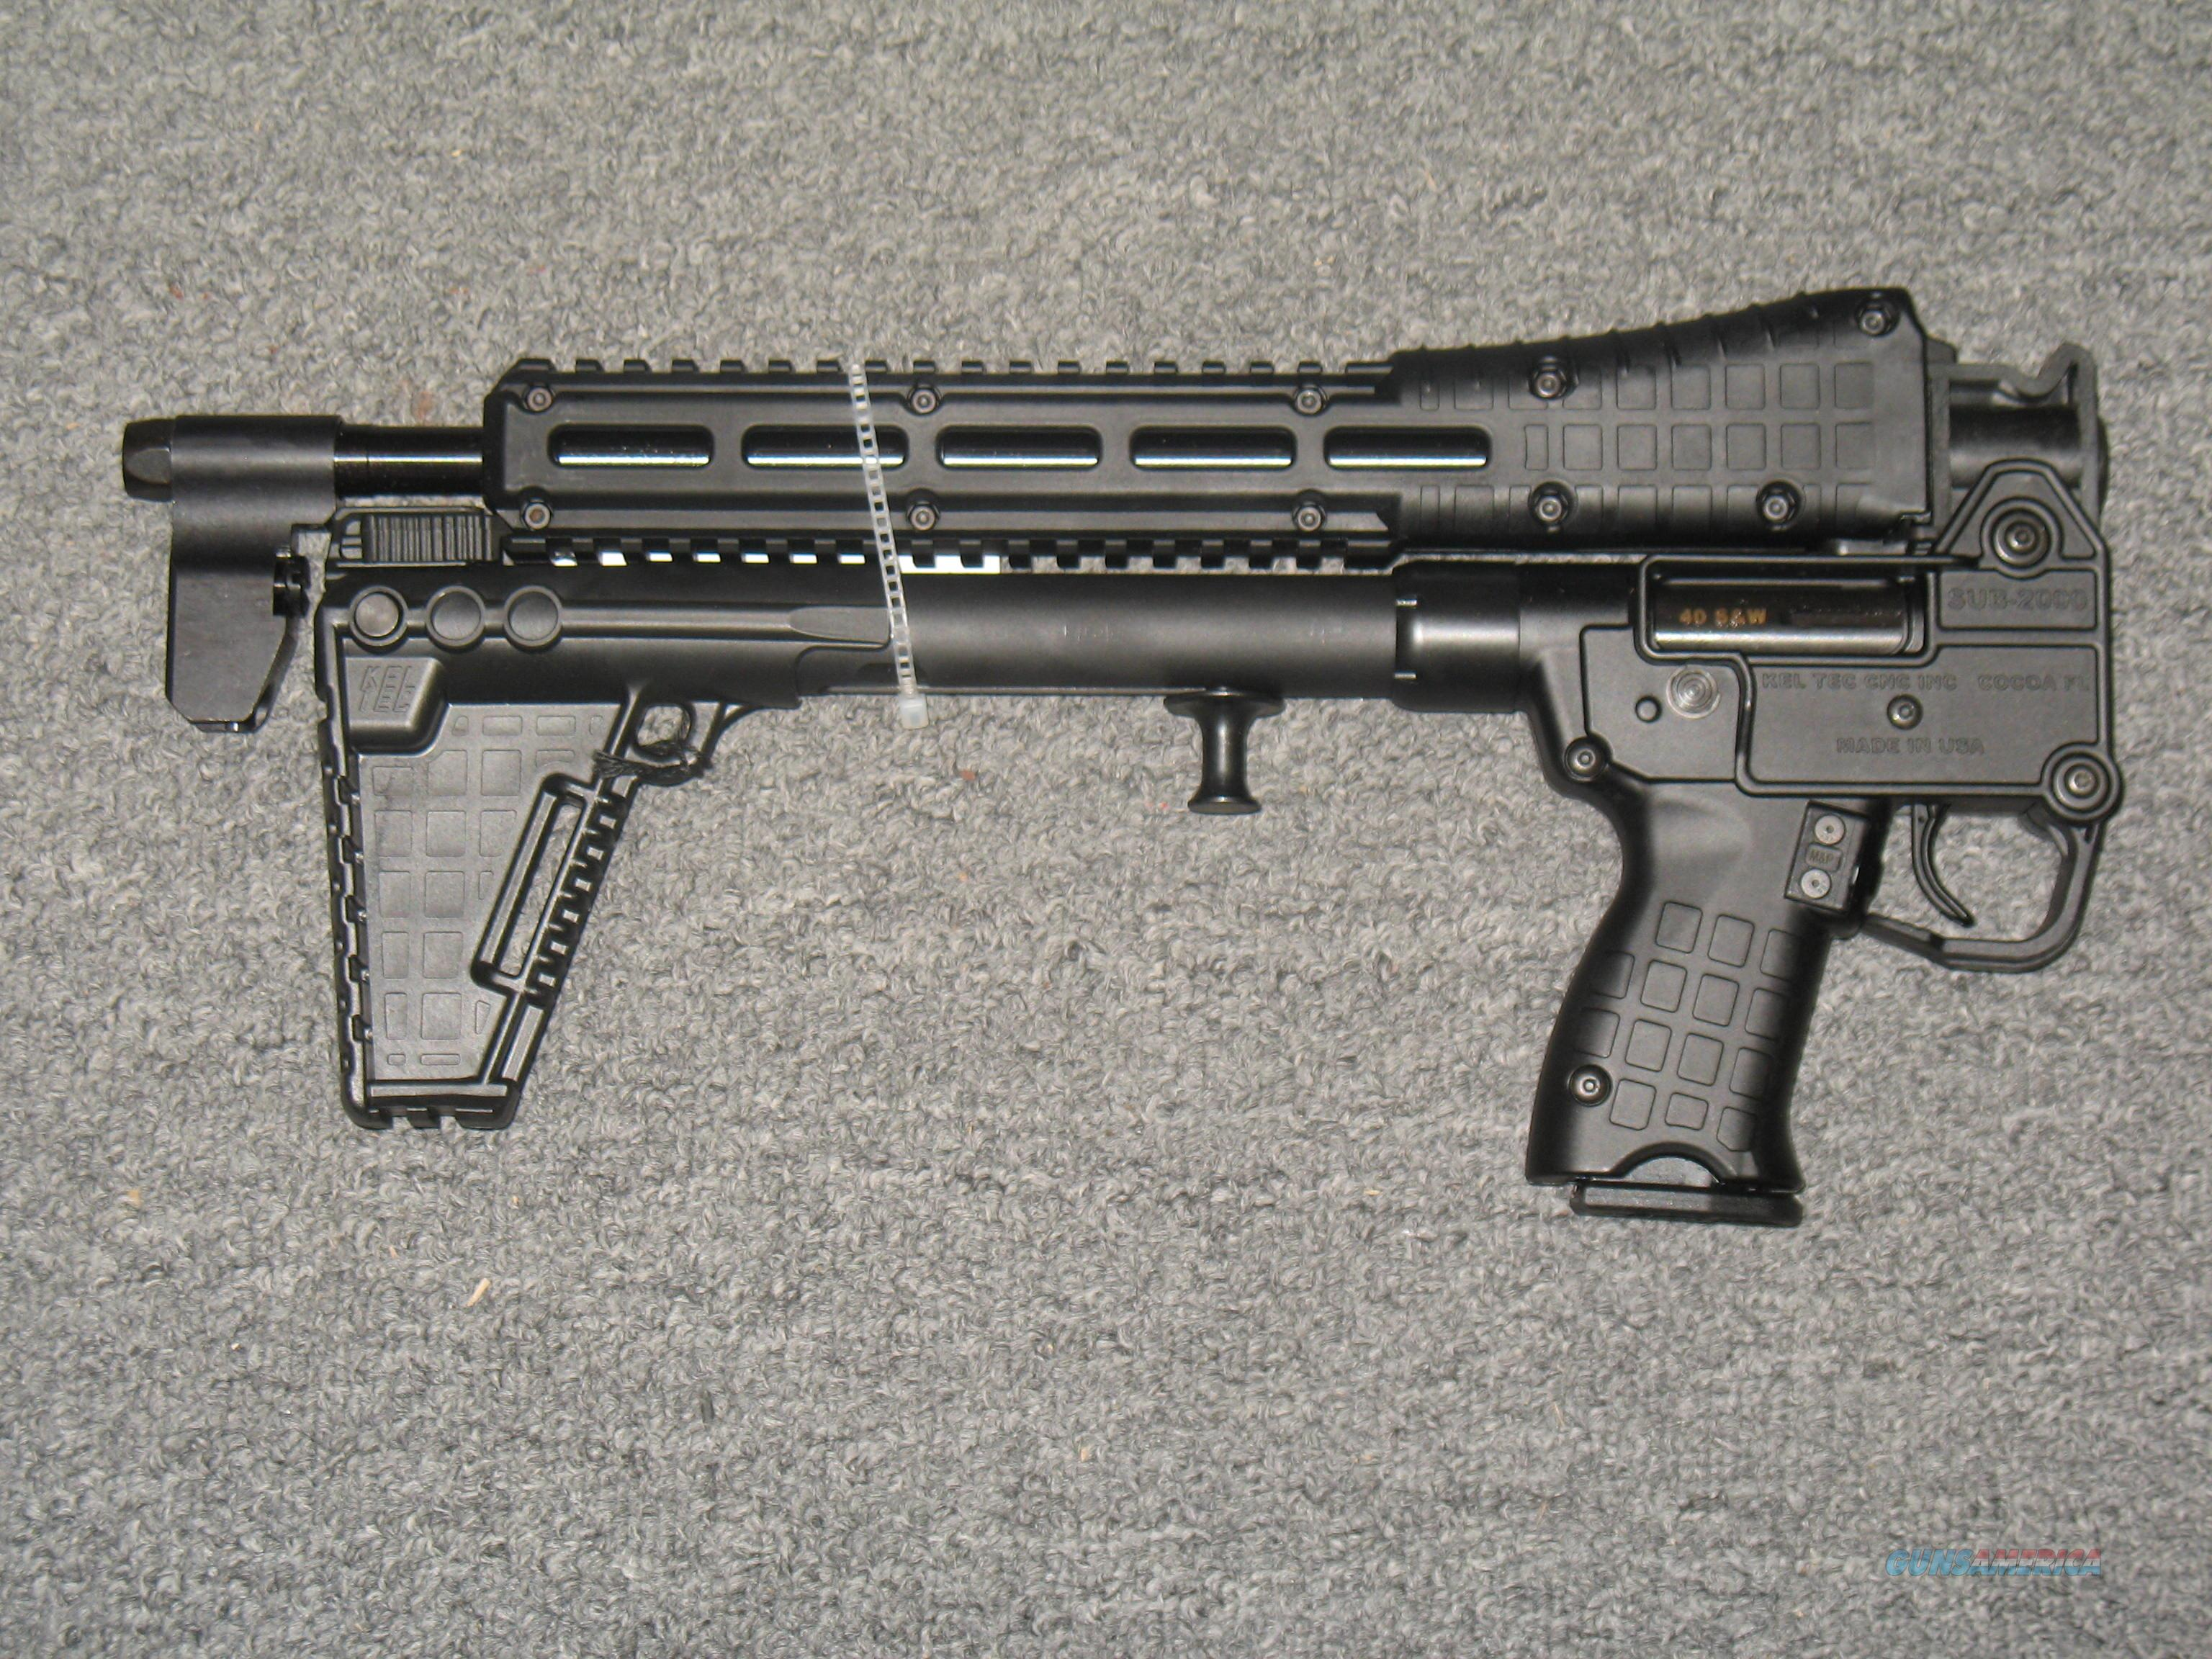 Kel-Tec Sub-2000 Gen 2 Uses S&W M&P9 Mags  Guns > Rifles > Kel-Tec Rifles